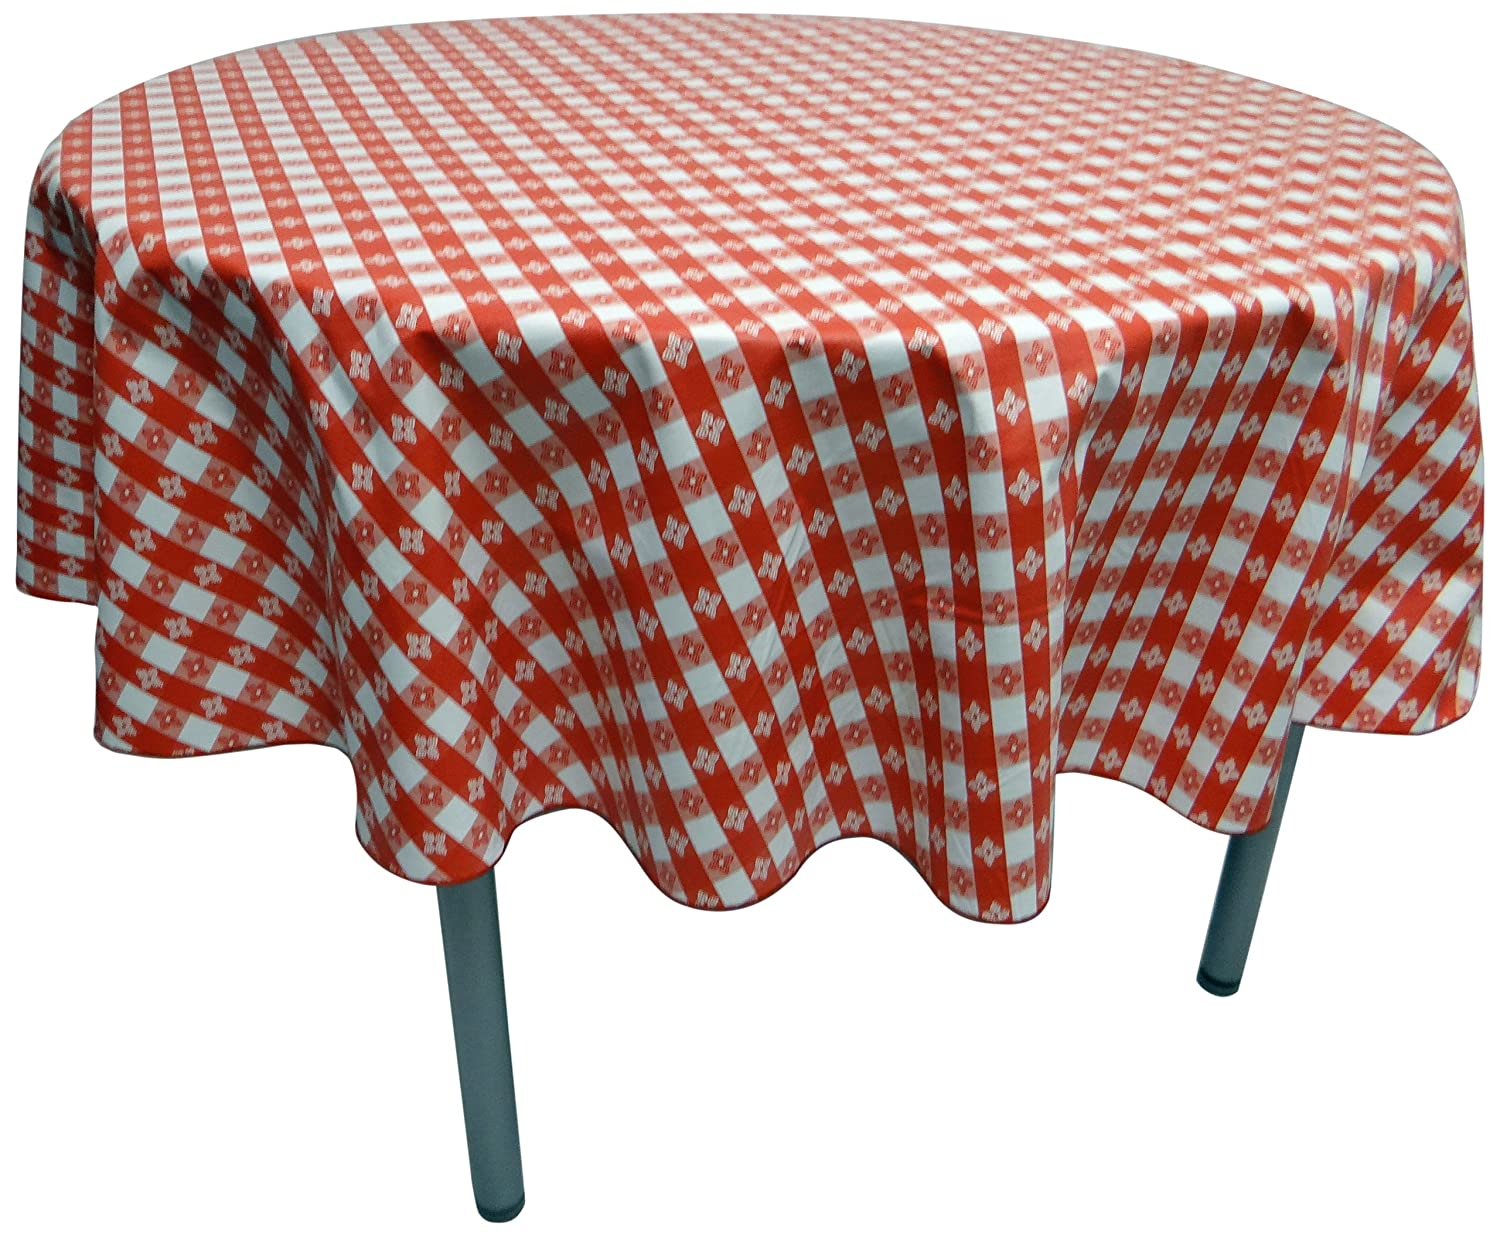 Amazon.com: Phoenix Cafe Check Vinyl Tablecloth, 52 Inch Inch Round Cut,  Red And White: Round Red Checkered Tablecloths: Kitchen U0026 Dining